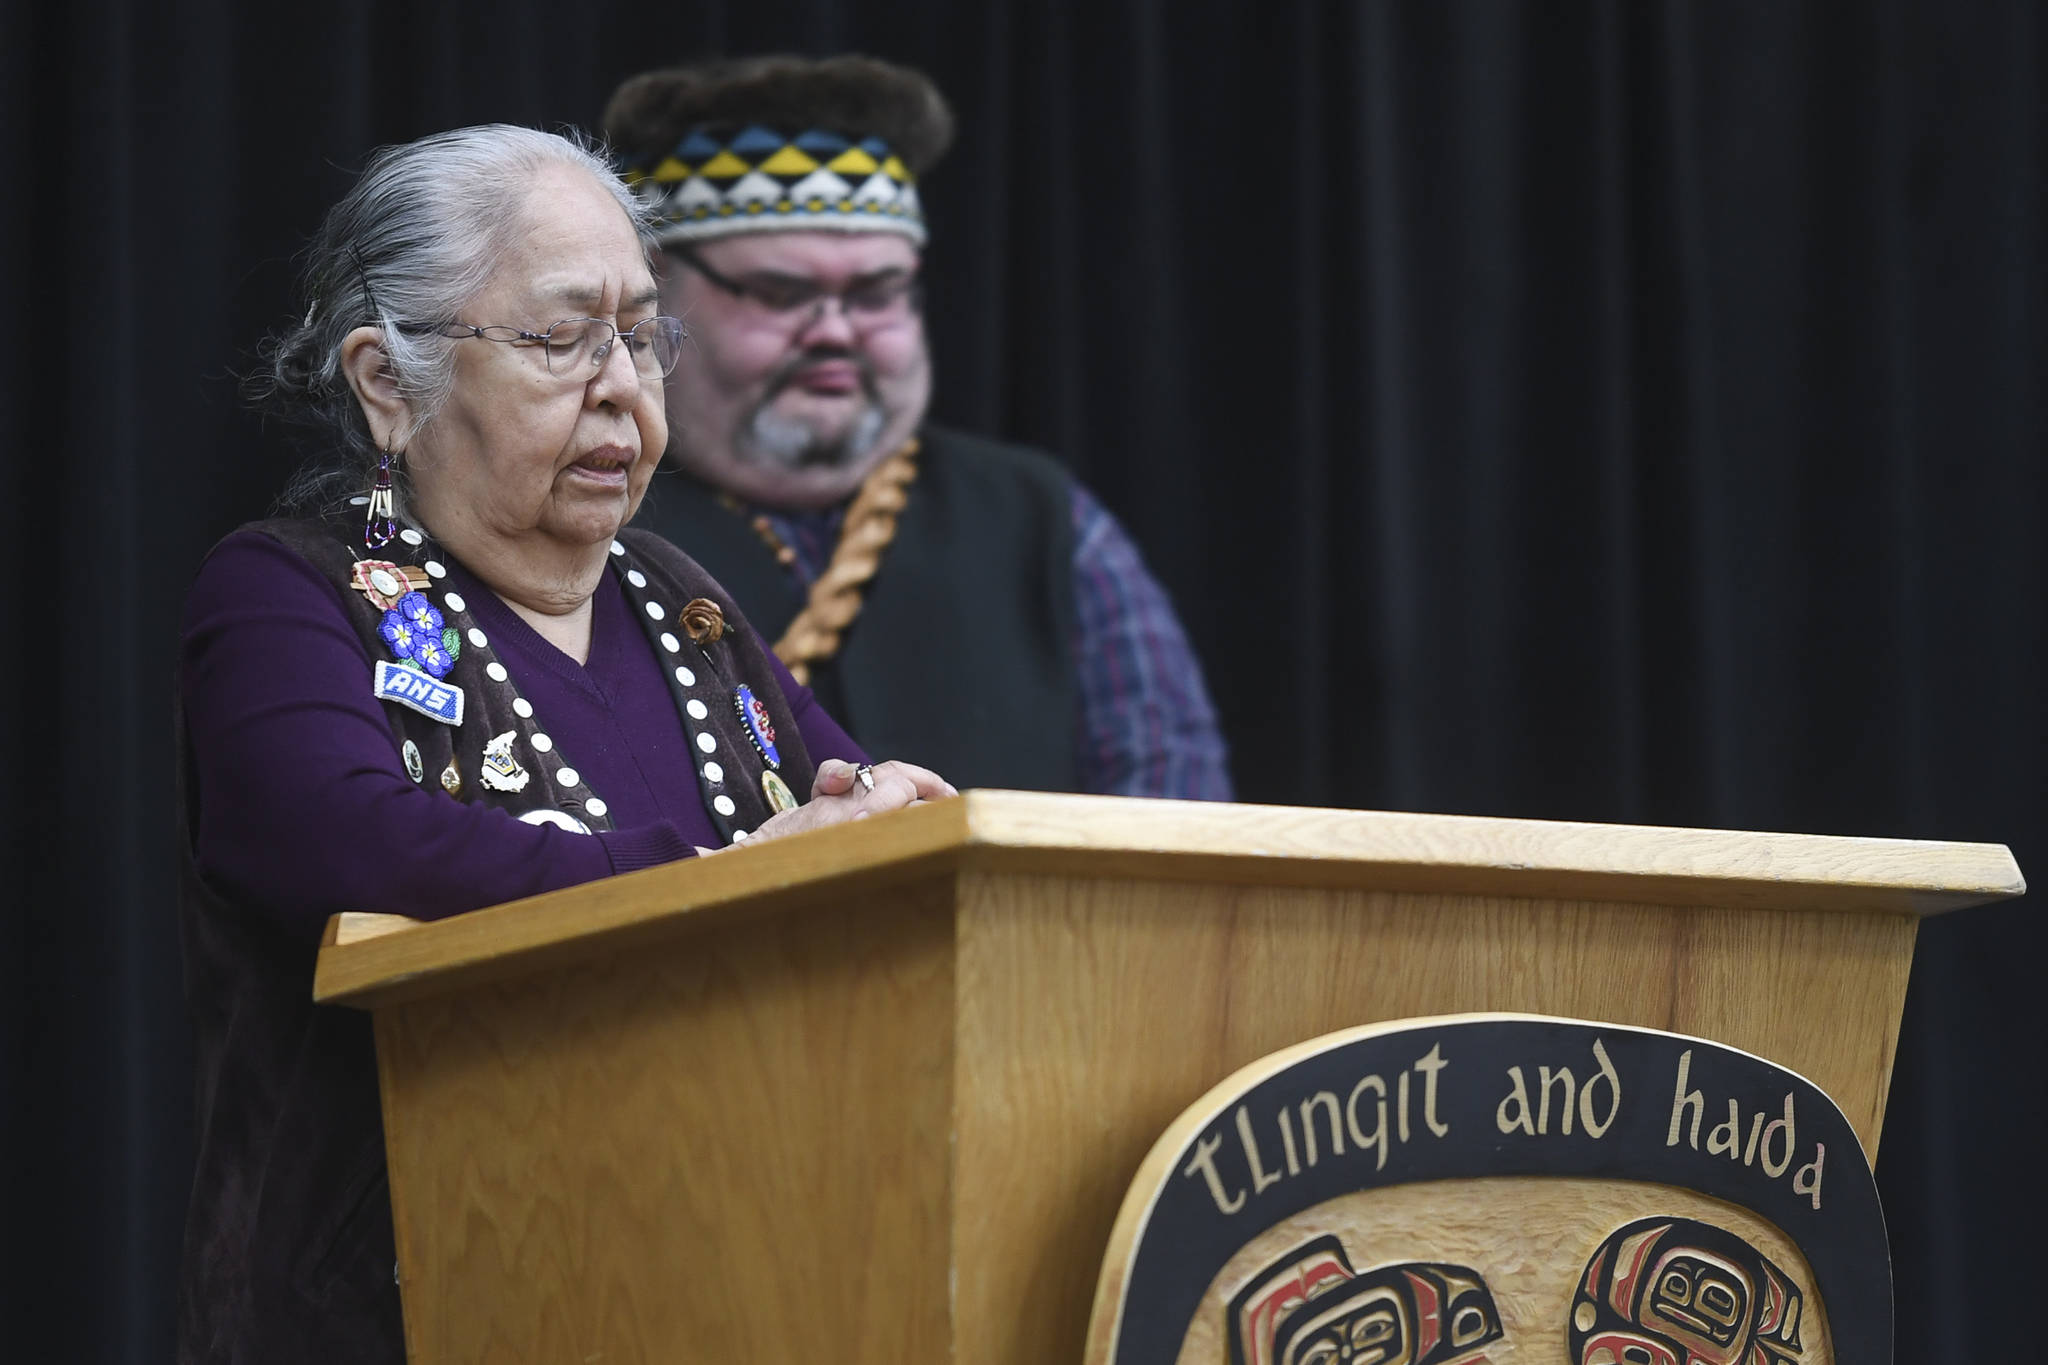 Florence Sheakley gives a prayer for Indigenous Peoples' Day at the Elizabeth Peratrovich Hall on Monday, Oct. 14, 2019. (Michael Penn | Juneau Empire)